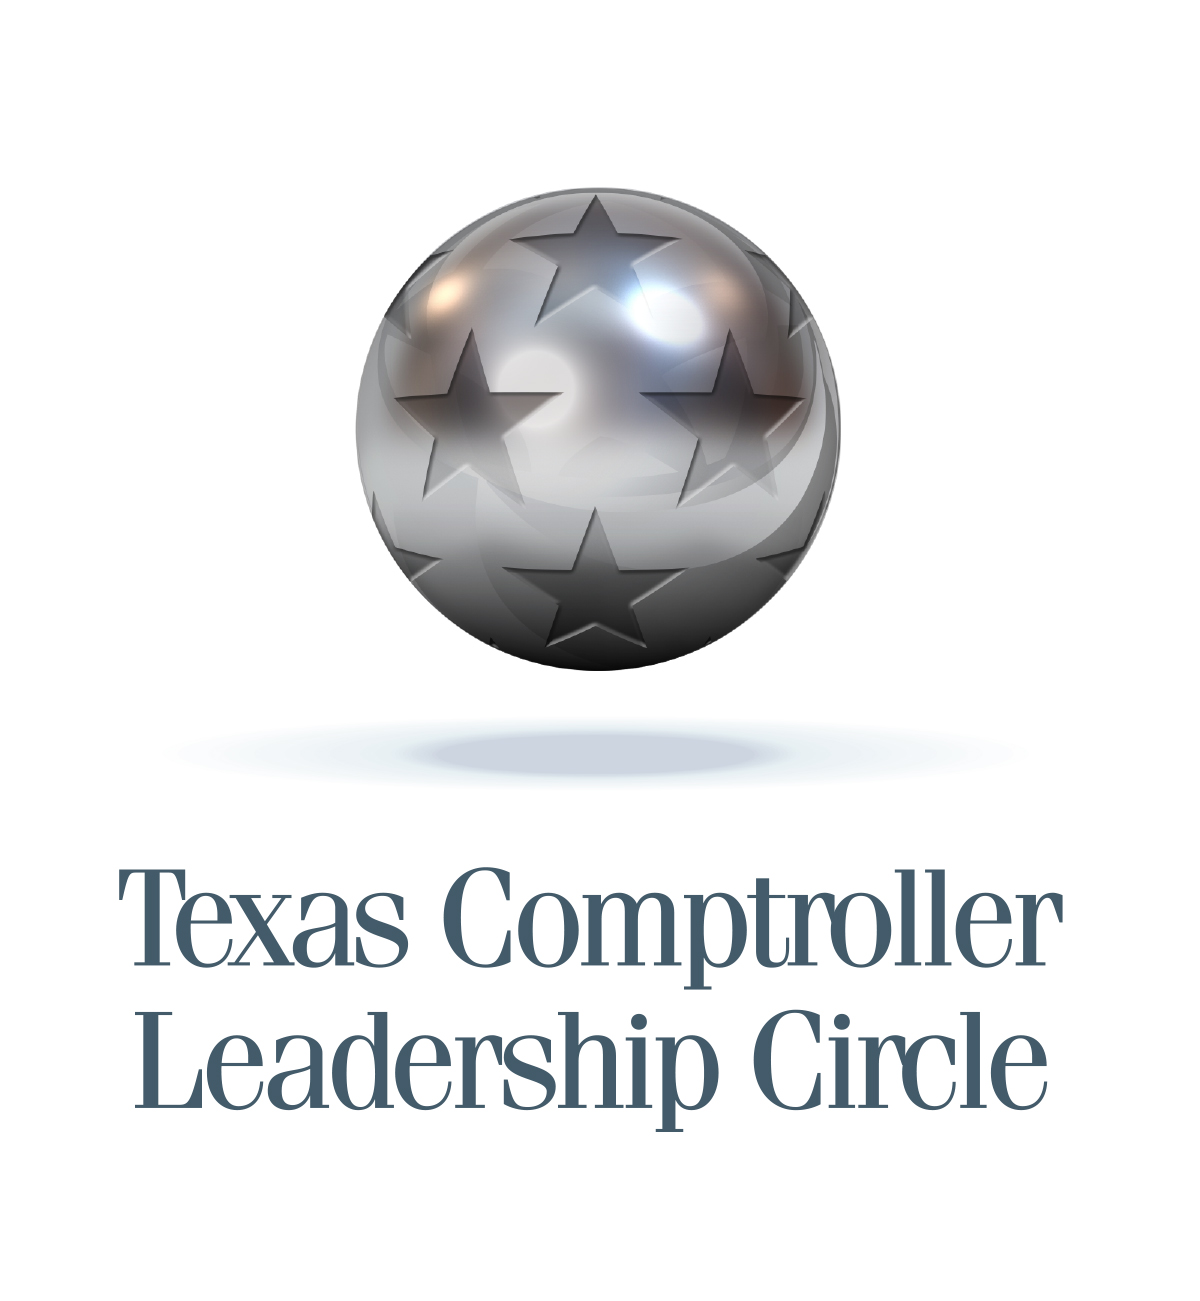 Texas Comptroller Leadership Circle Award. A plantinum colored ball with stars.